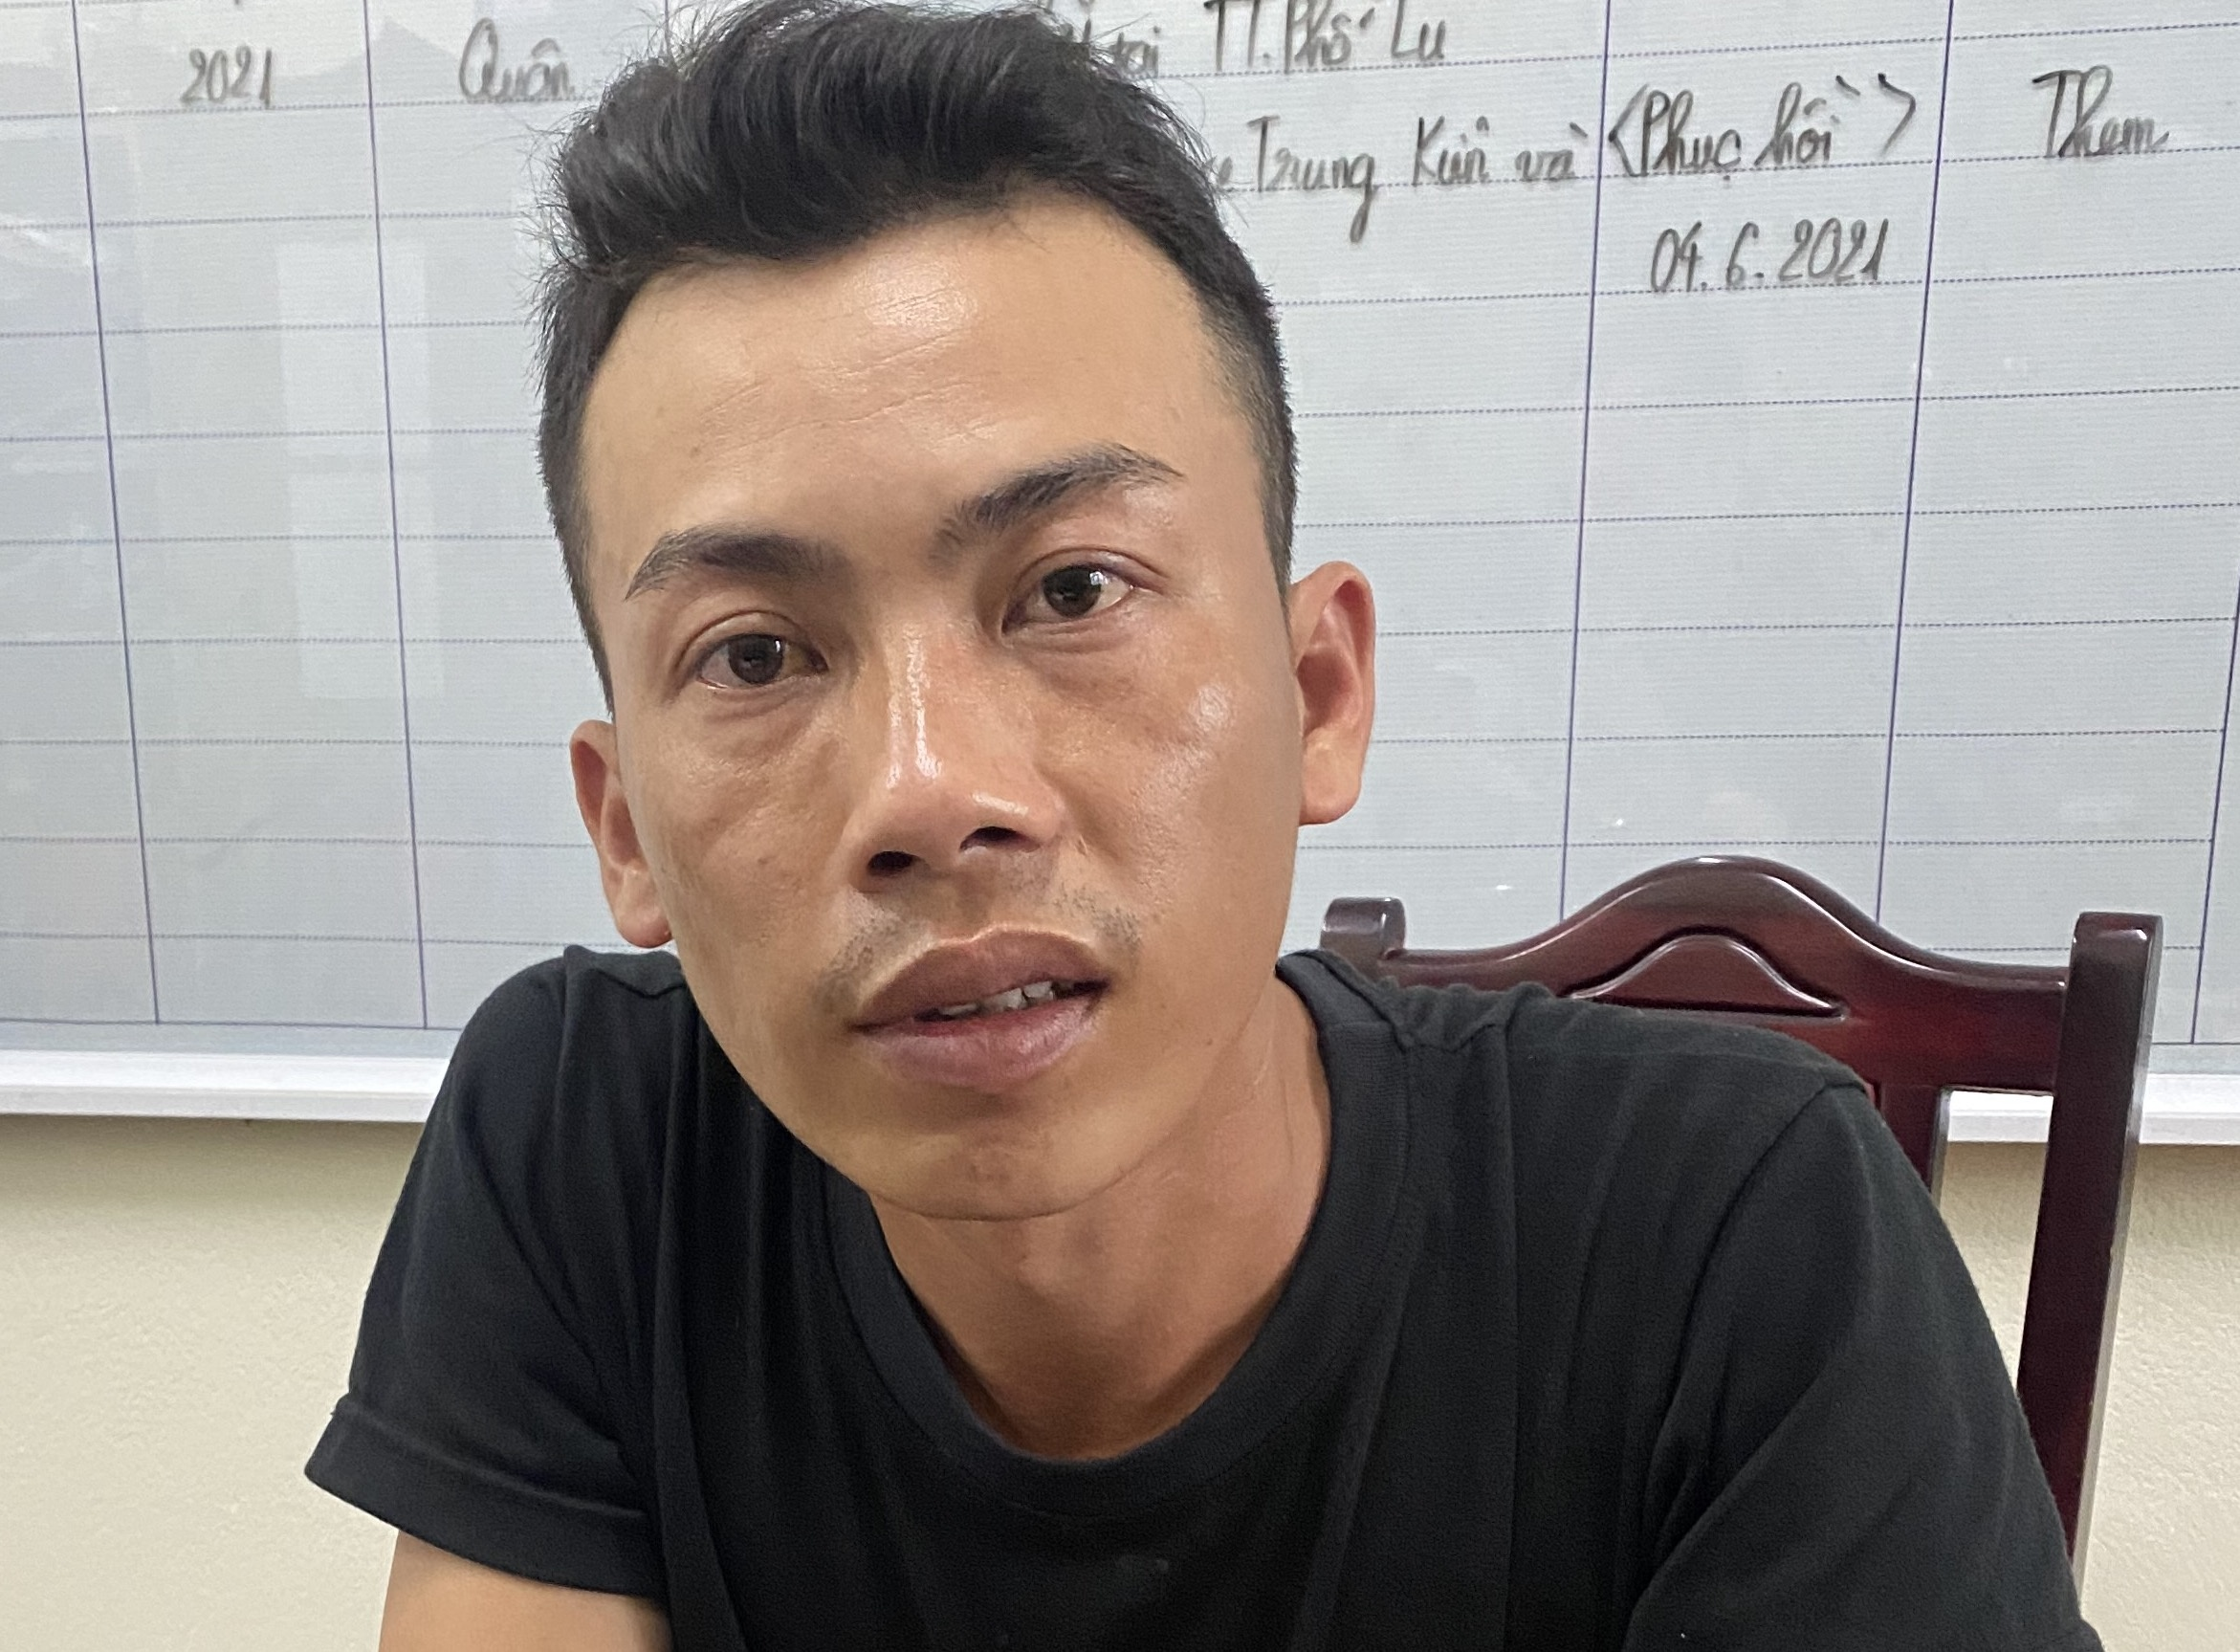 Cuop thuoc tang cuong sinh luc anh 1